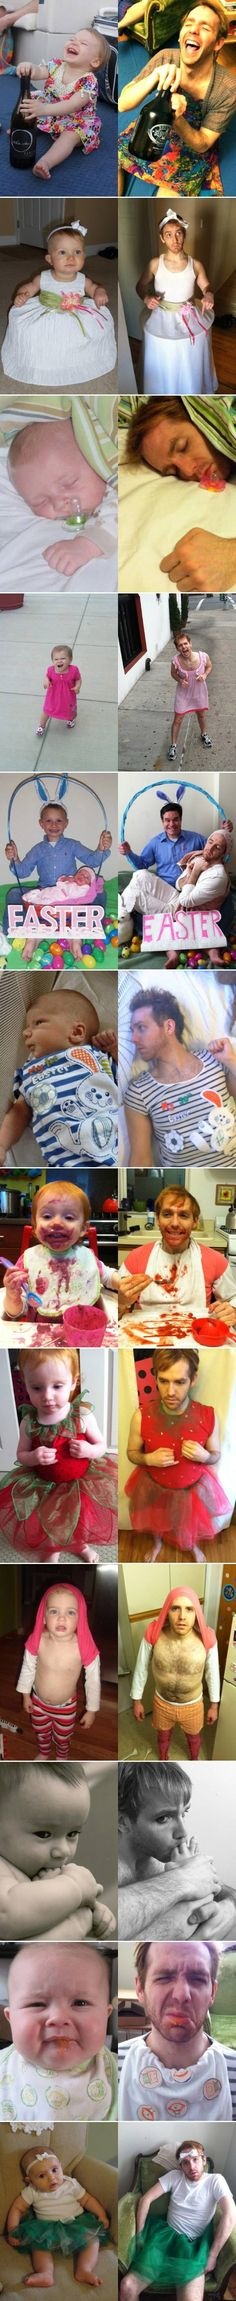 One mans journey to recreate his girlfriends baby photos. oh my